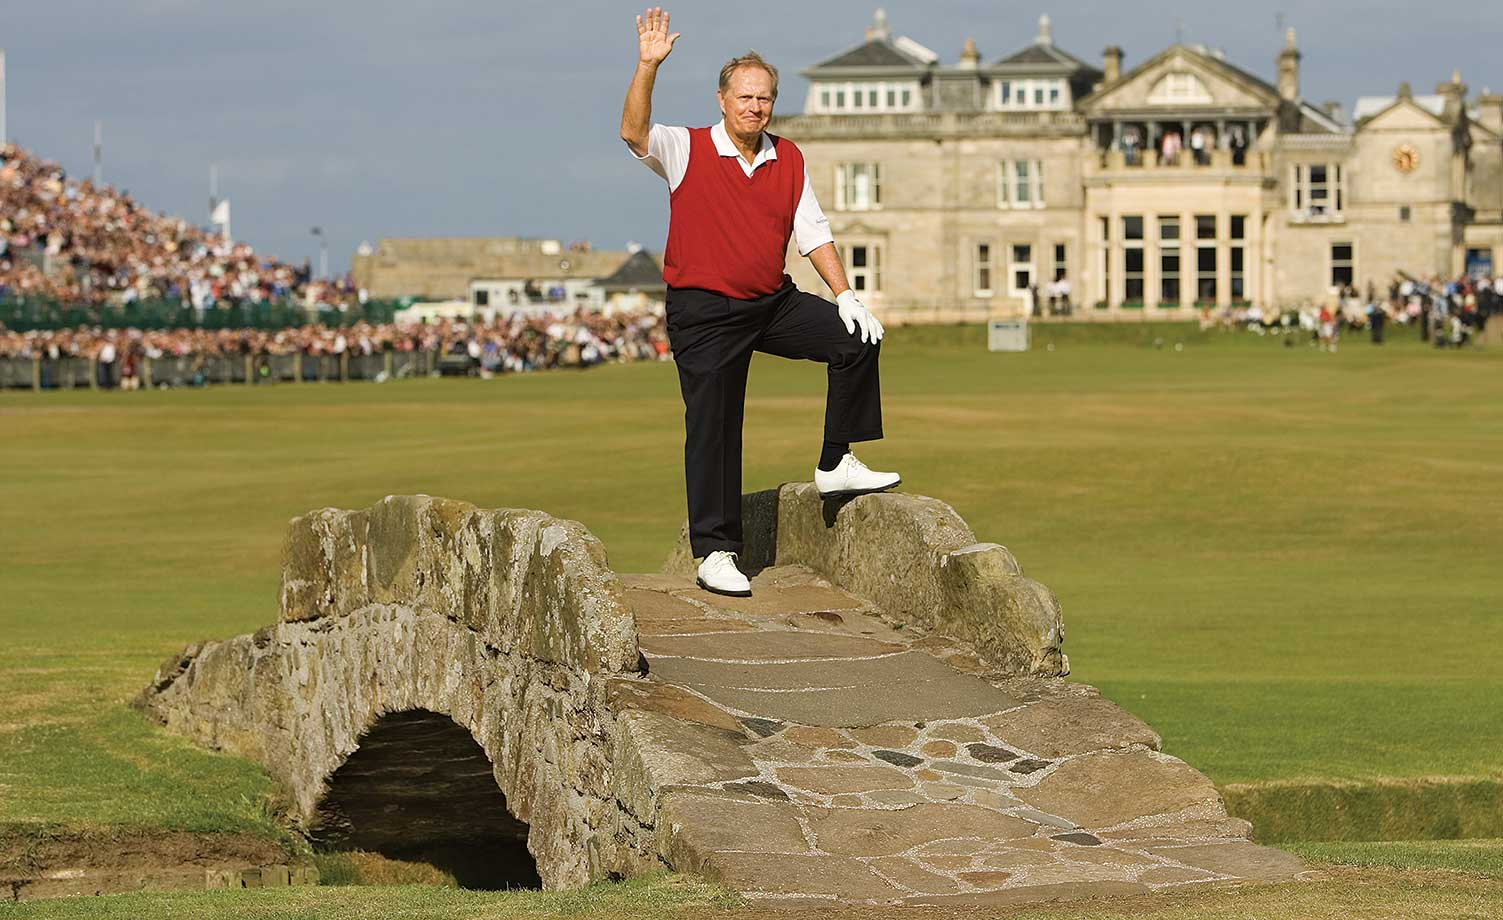 During the final hole of Jack Nicklaus' final tournament, the 2005 British Open, the Golden Bear received a 10-minute standing ovation after crushing the final tee shot of his career. Then, in true Nicklaus fashion, he made a 15-foot birdie putt to close out the greatest career in PGA history.